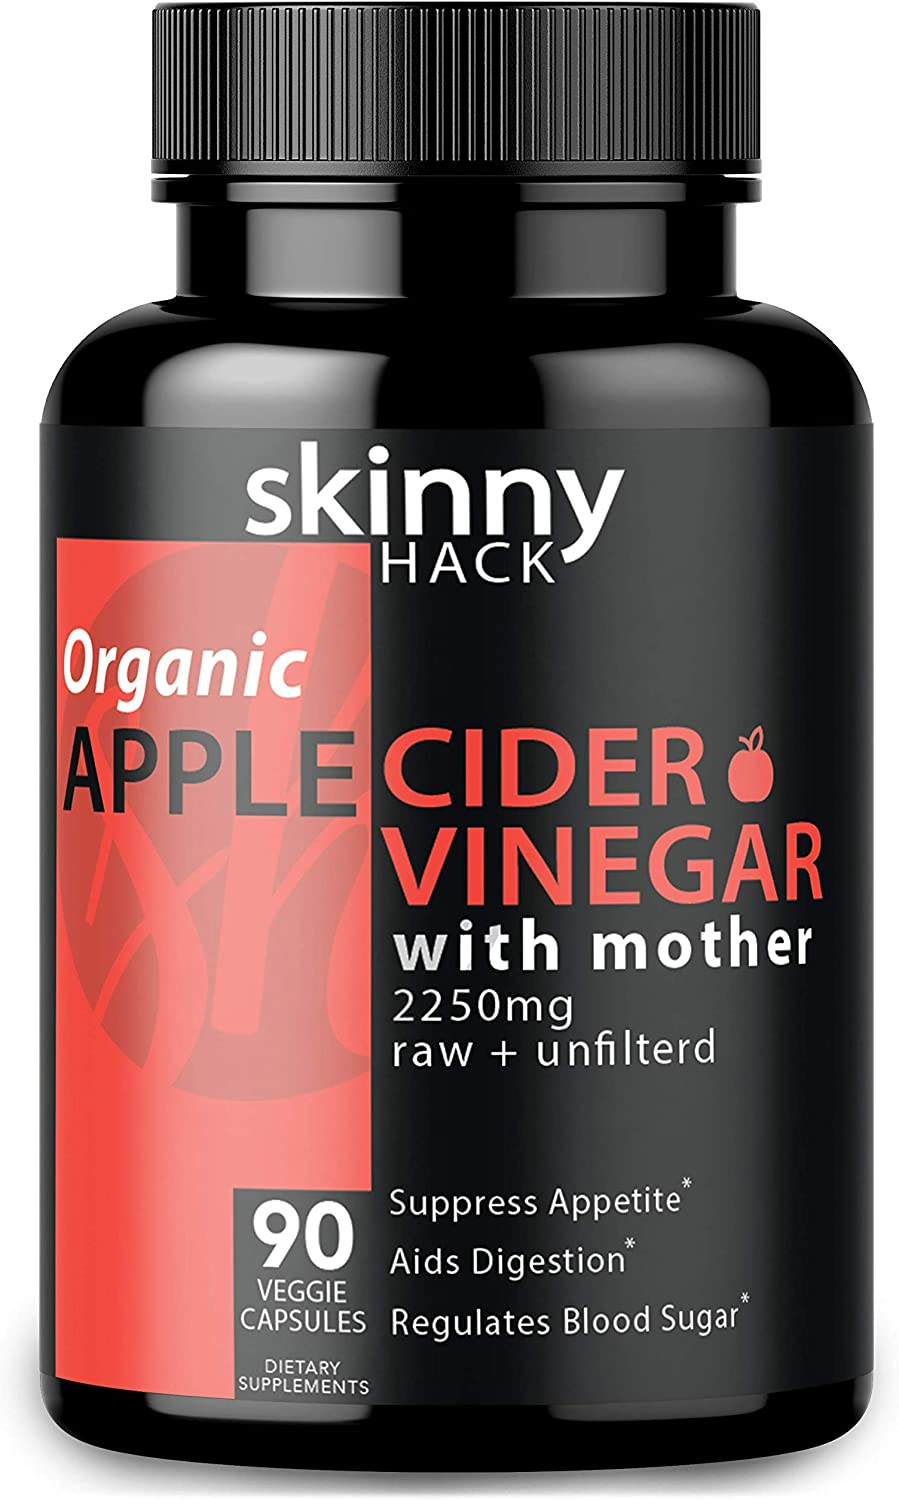 Organic Apple Cider Vinegar Capsules with Mother – Max Dose 2200 mg Raw Unfiltered ACV Pills for Weight Loss, Detox and Anti-Bloating 90 Vegan ACV Capsules